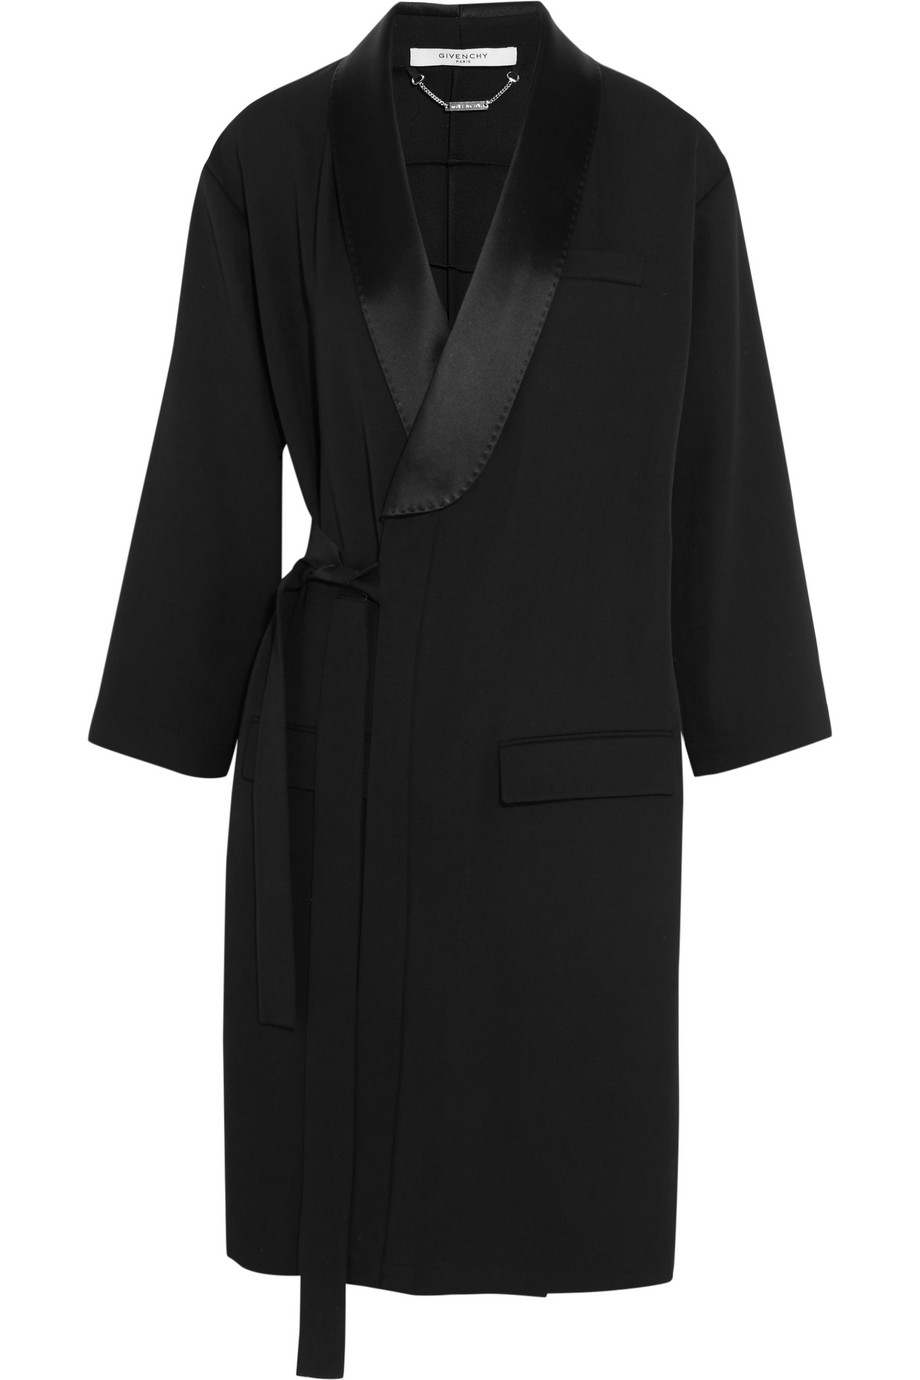 Givenchy Belted Trench Coat in Satin-Trimmed Wool, Black, Women's, Size: 34